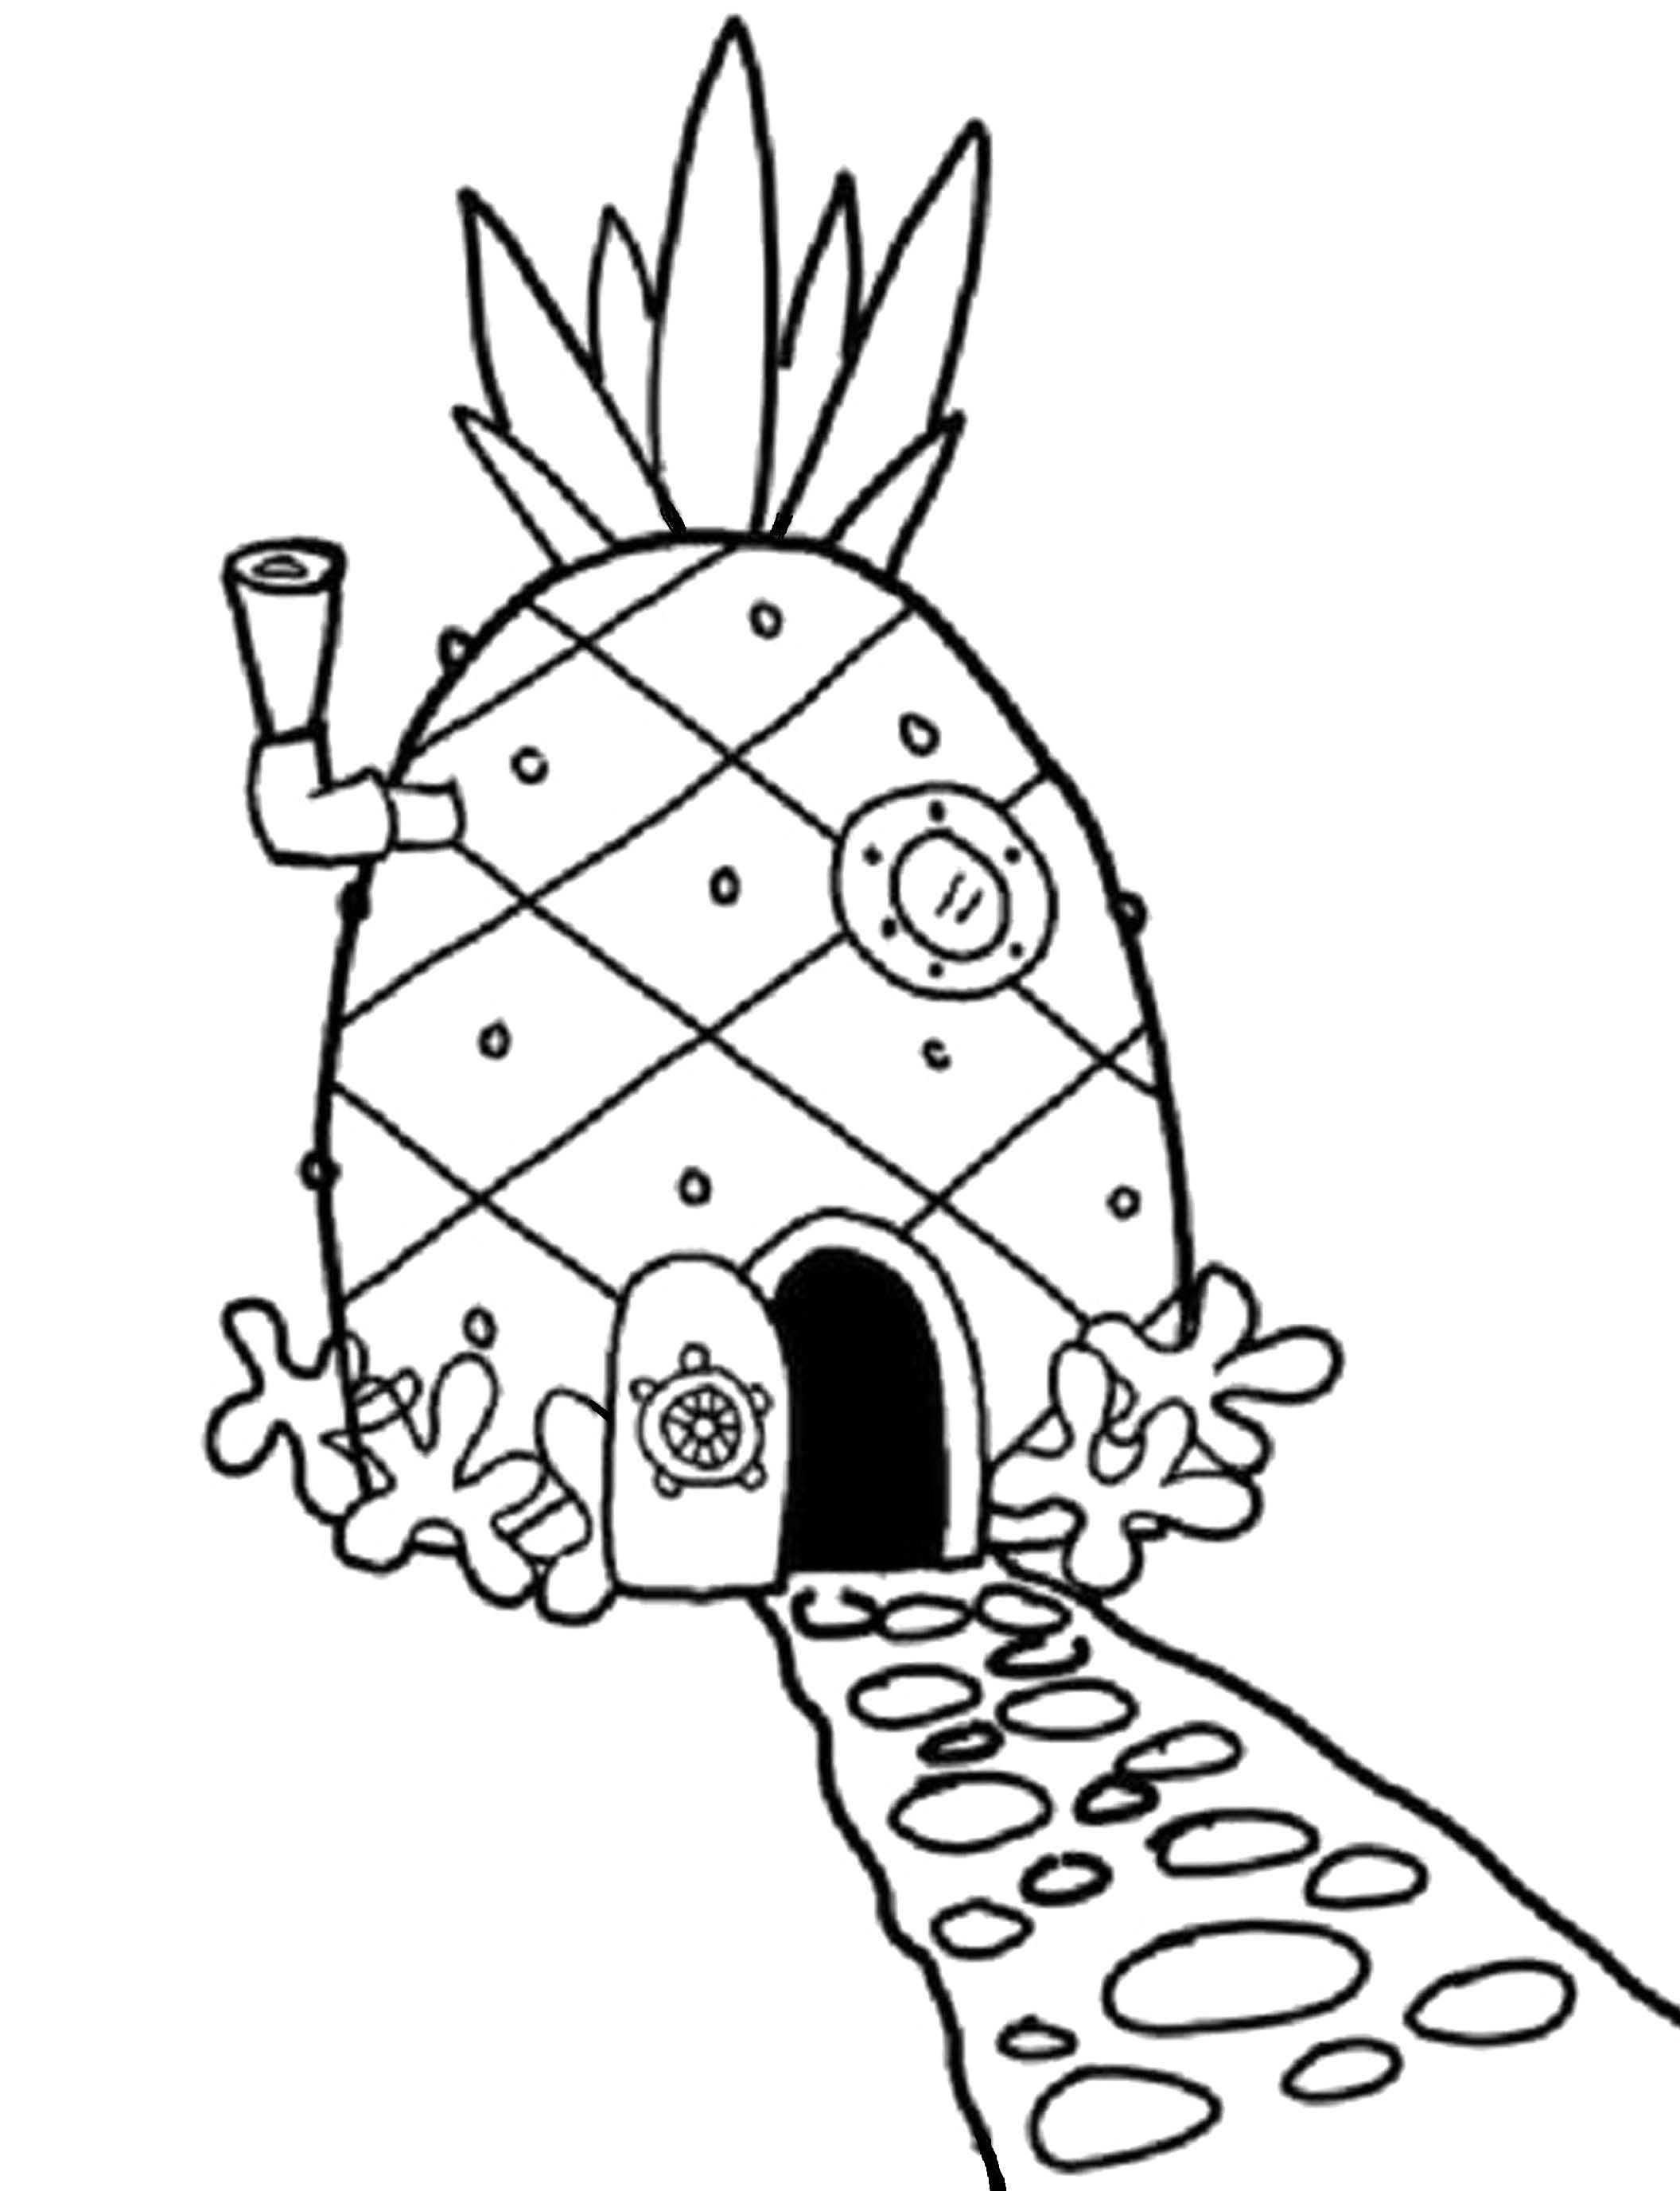 Spongebob house coloring pages from the thousands of photos on line regarding spongebob house coloring pages selects the very best choices with ideal